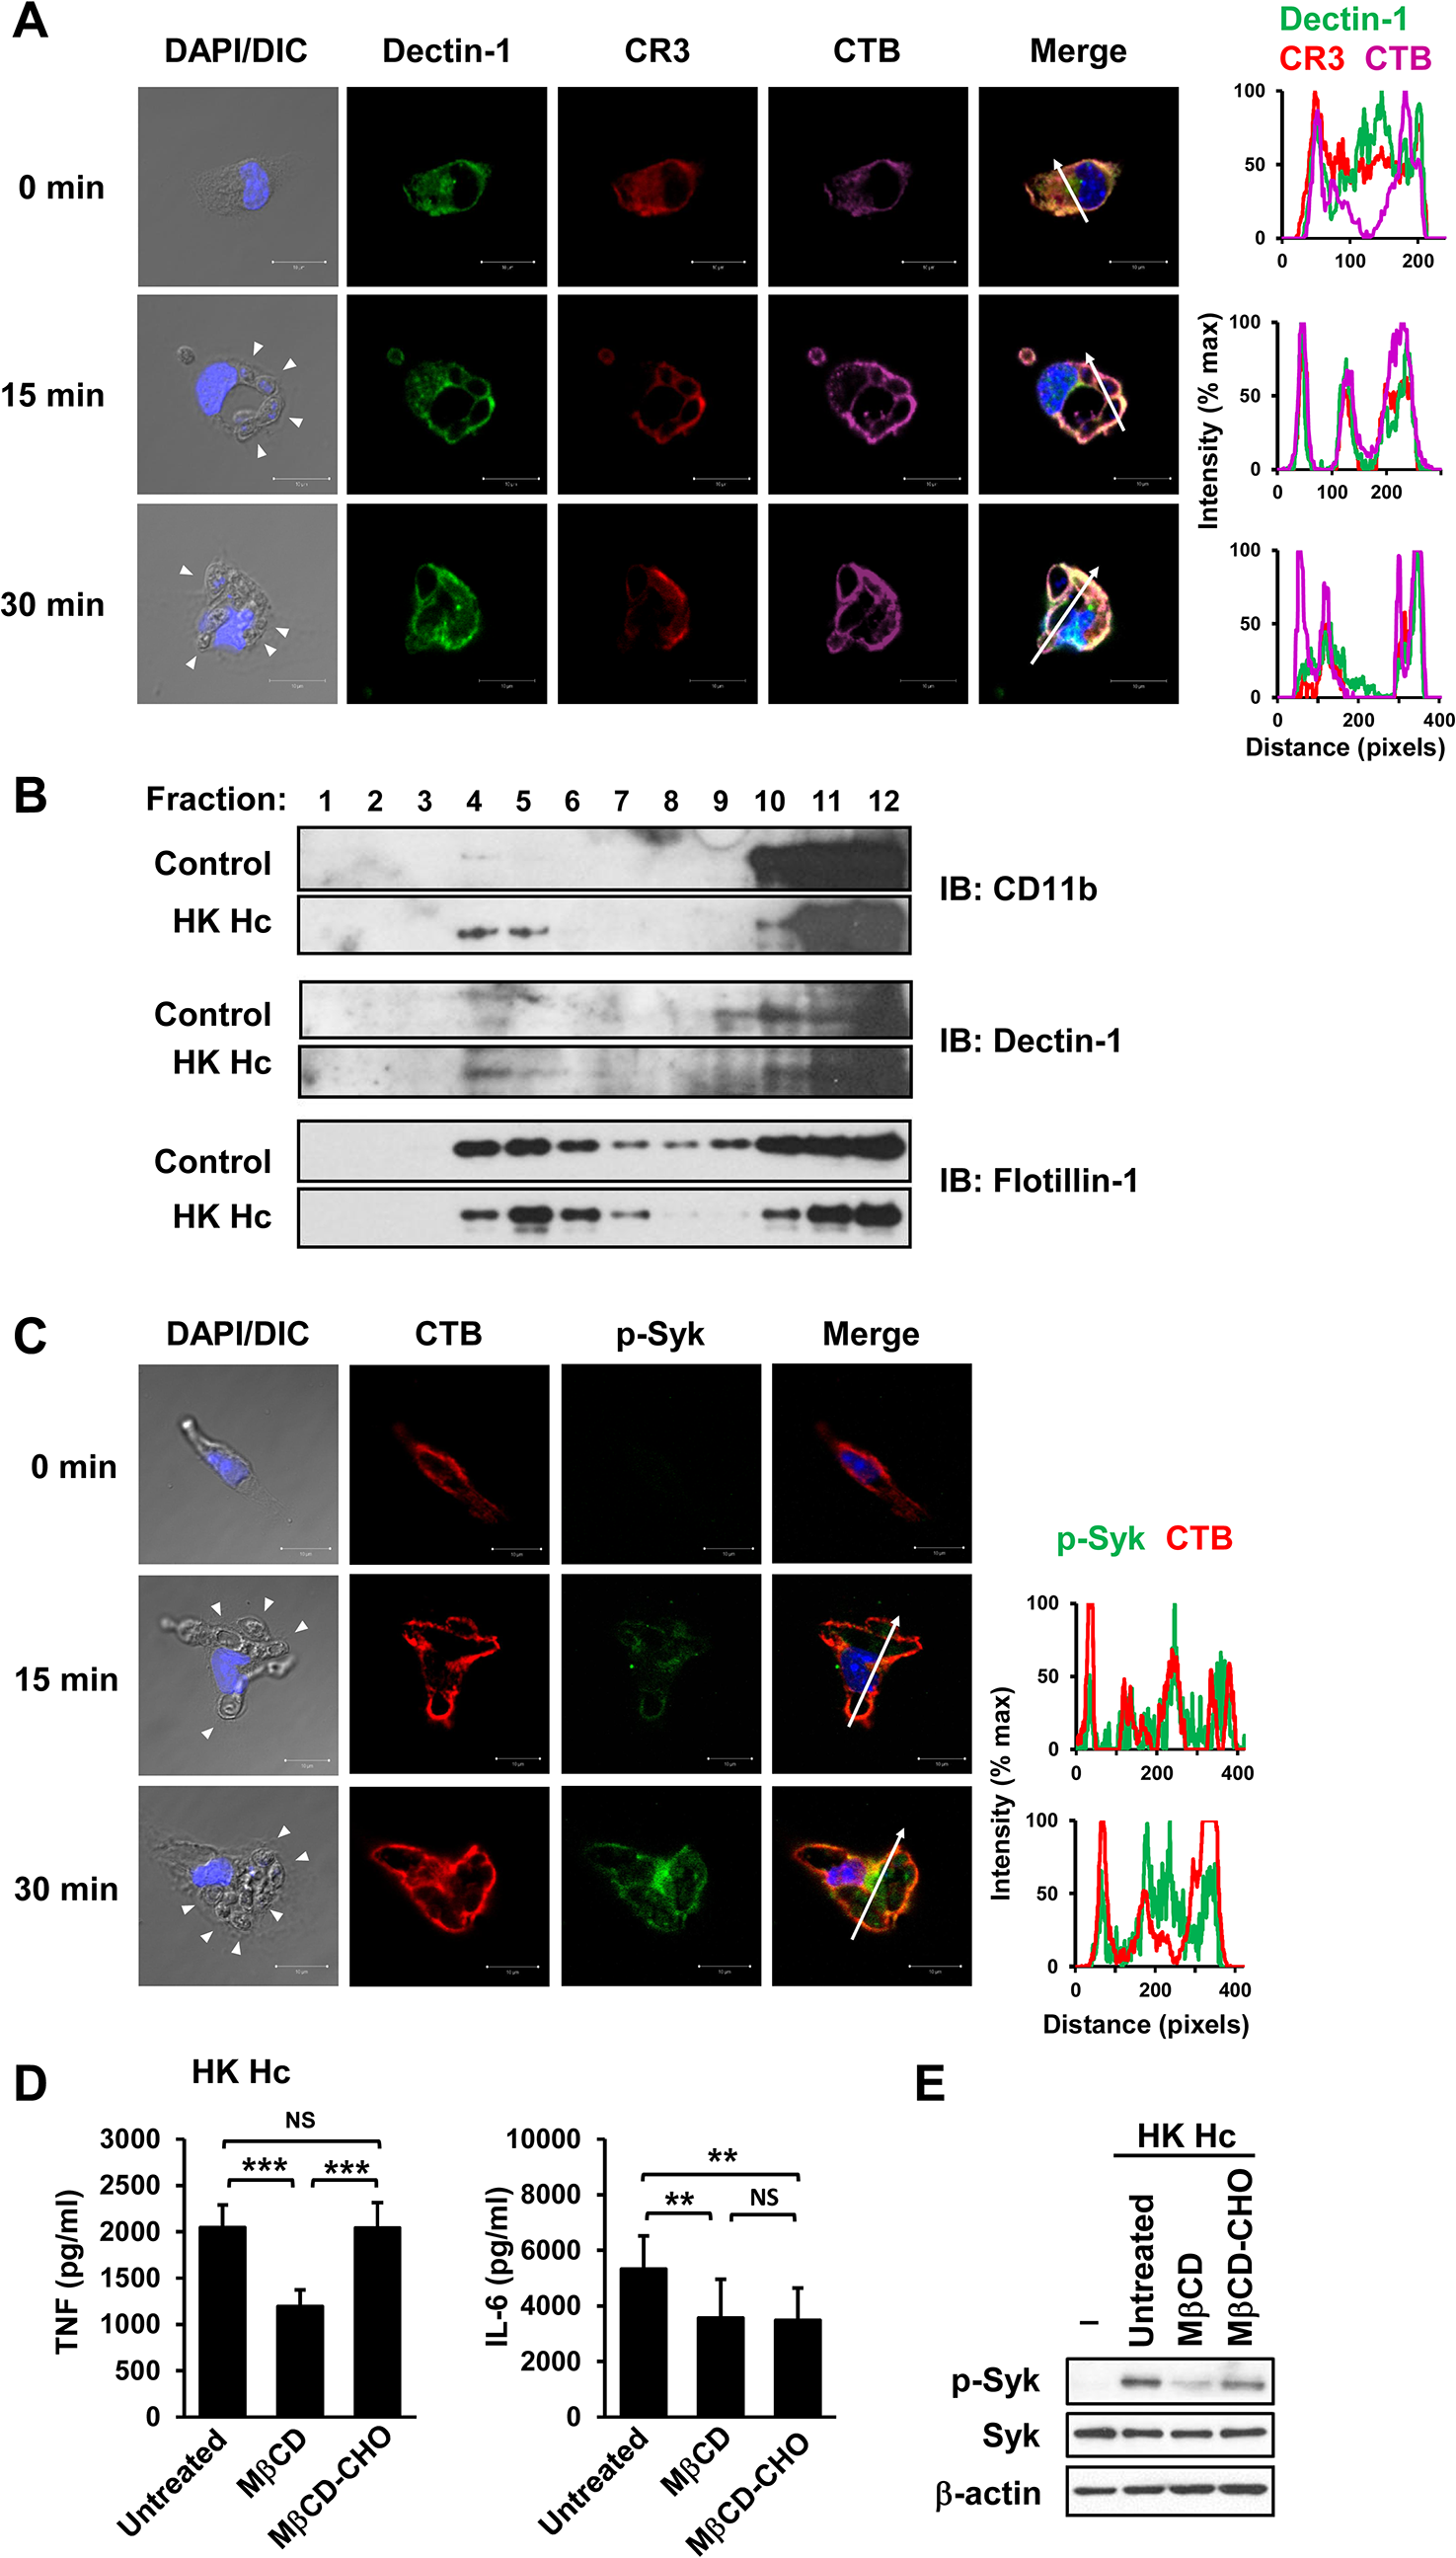 Clustering of CR3 and Dectin-1 on lipid rafts is required for their collaboration in cytokine production and signaling activation.